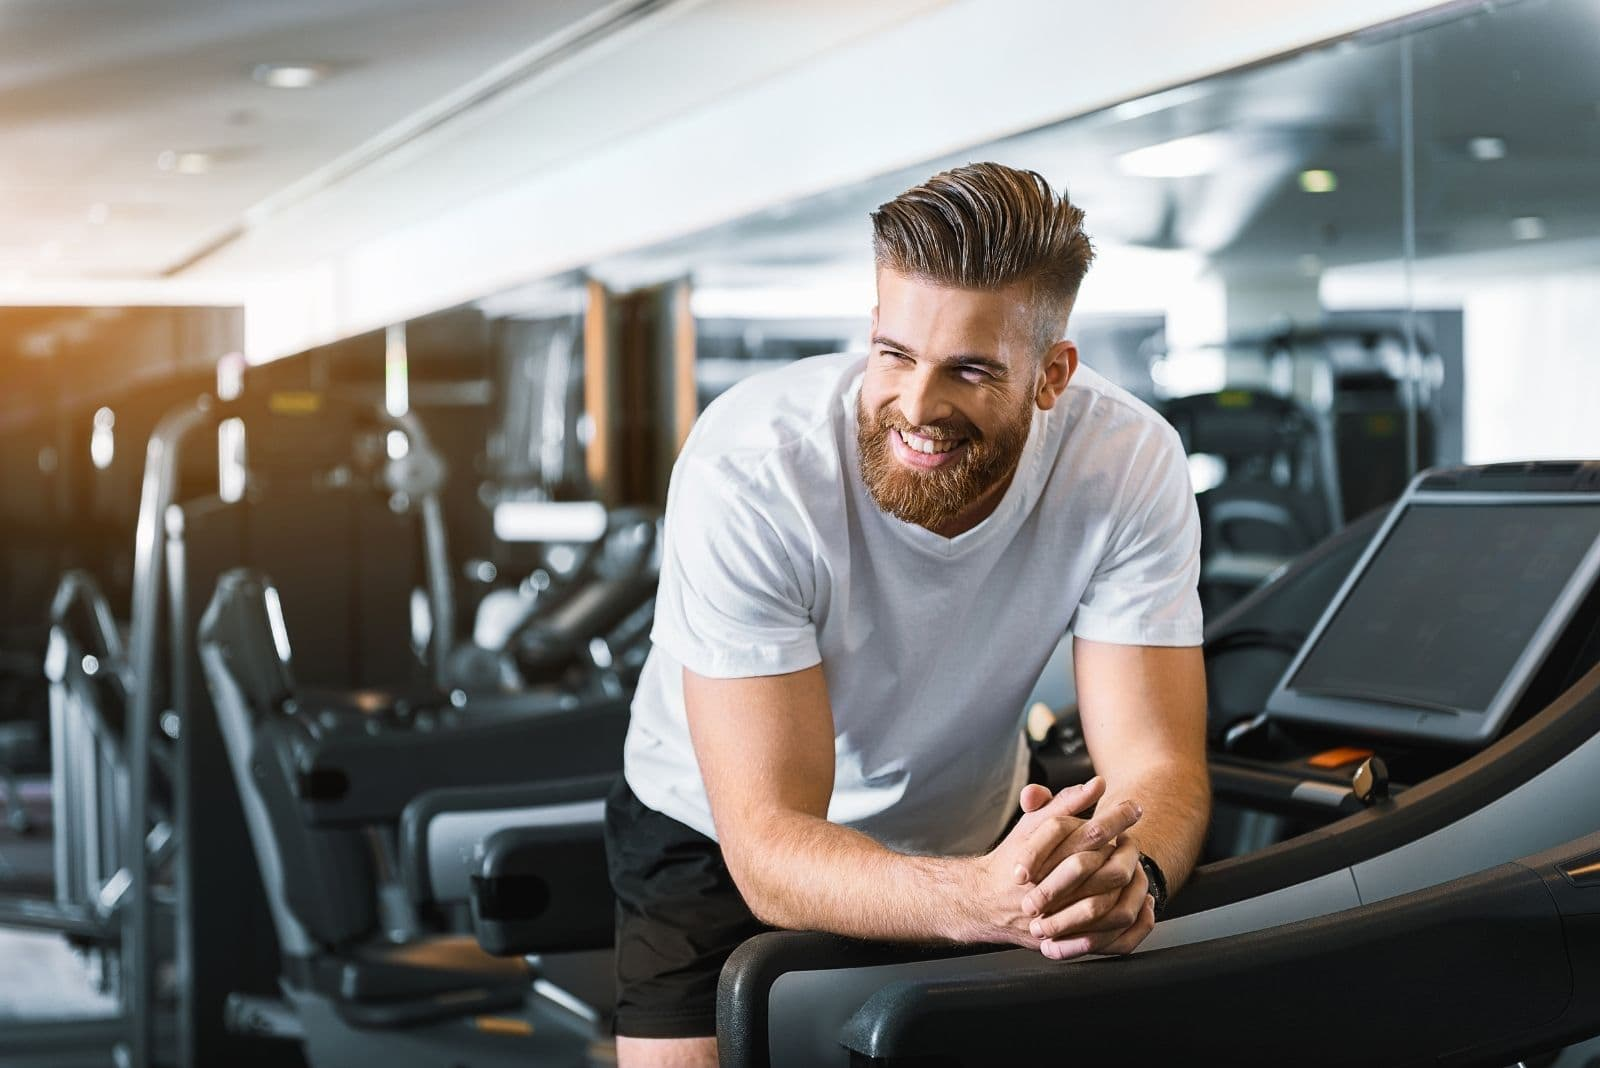 smiling man leaning on the side of the threadmill inside the gym